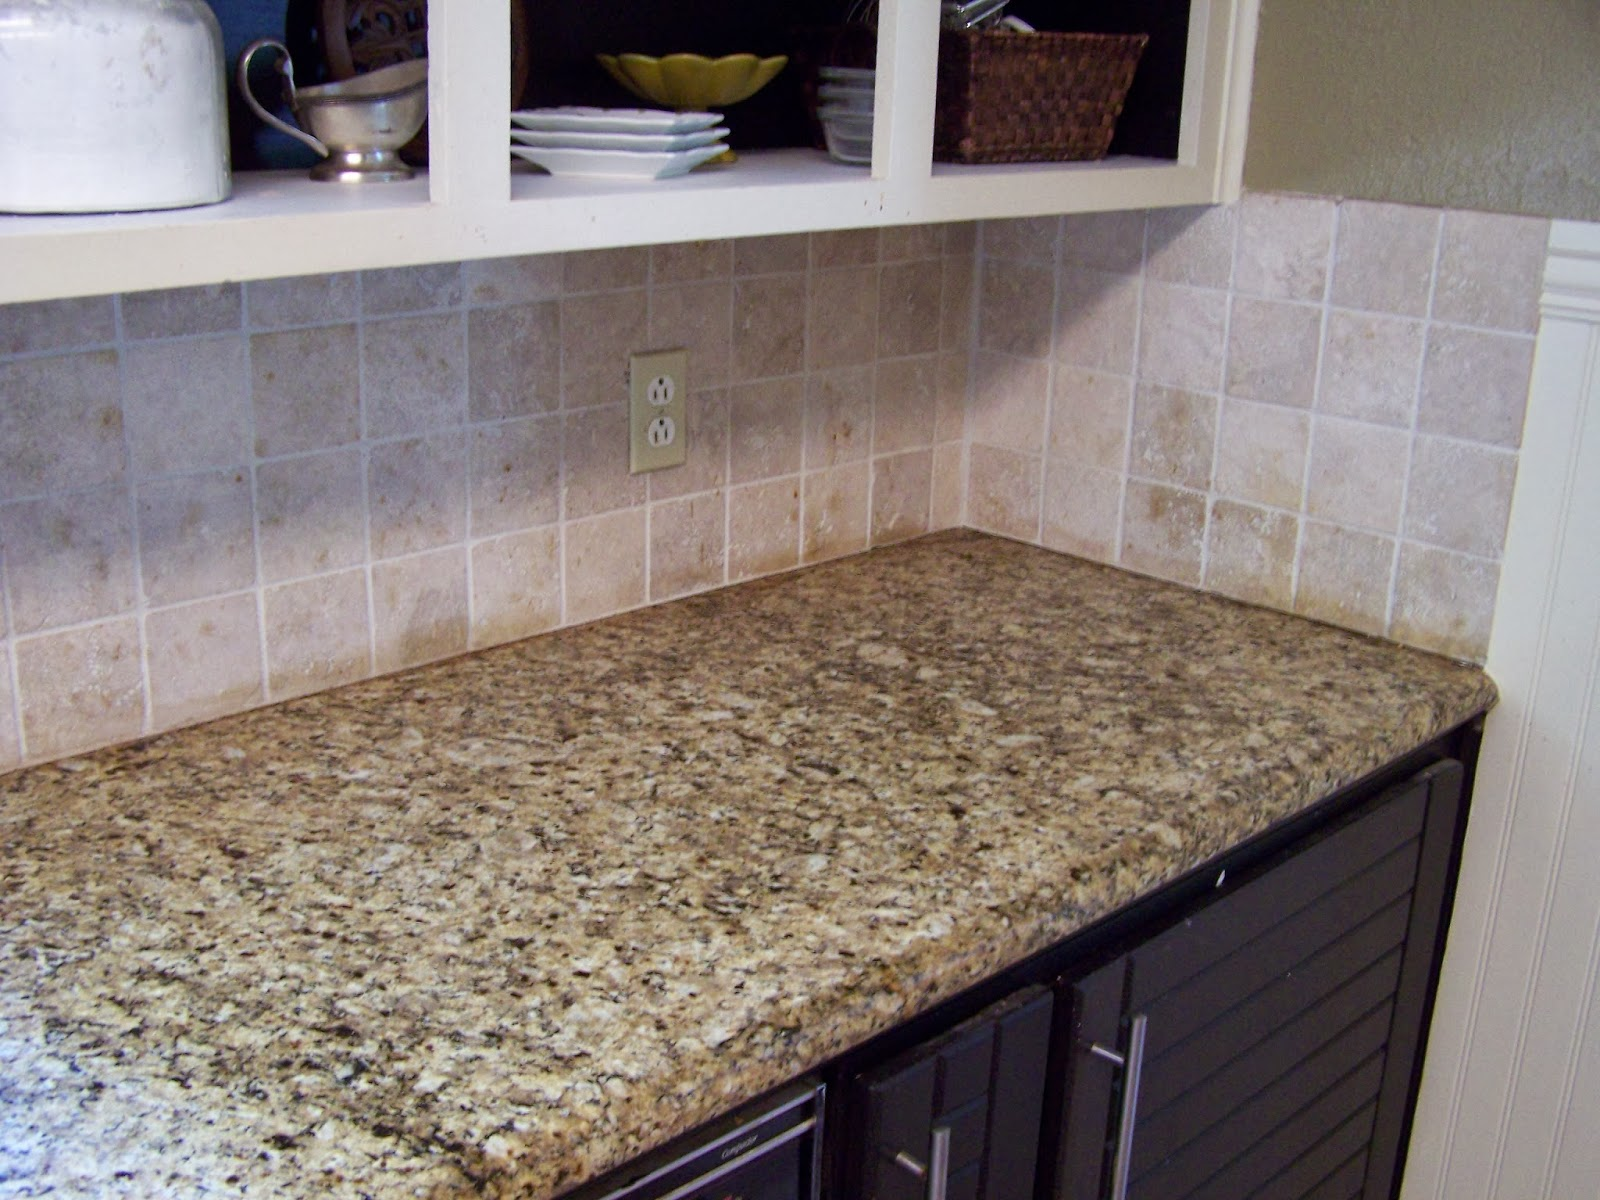 painting tile backsplash and more easy backsplashes for kitchens Painting a Tile Backsplash and more easy kitchen updates